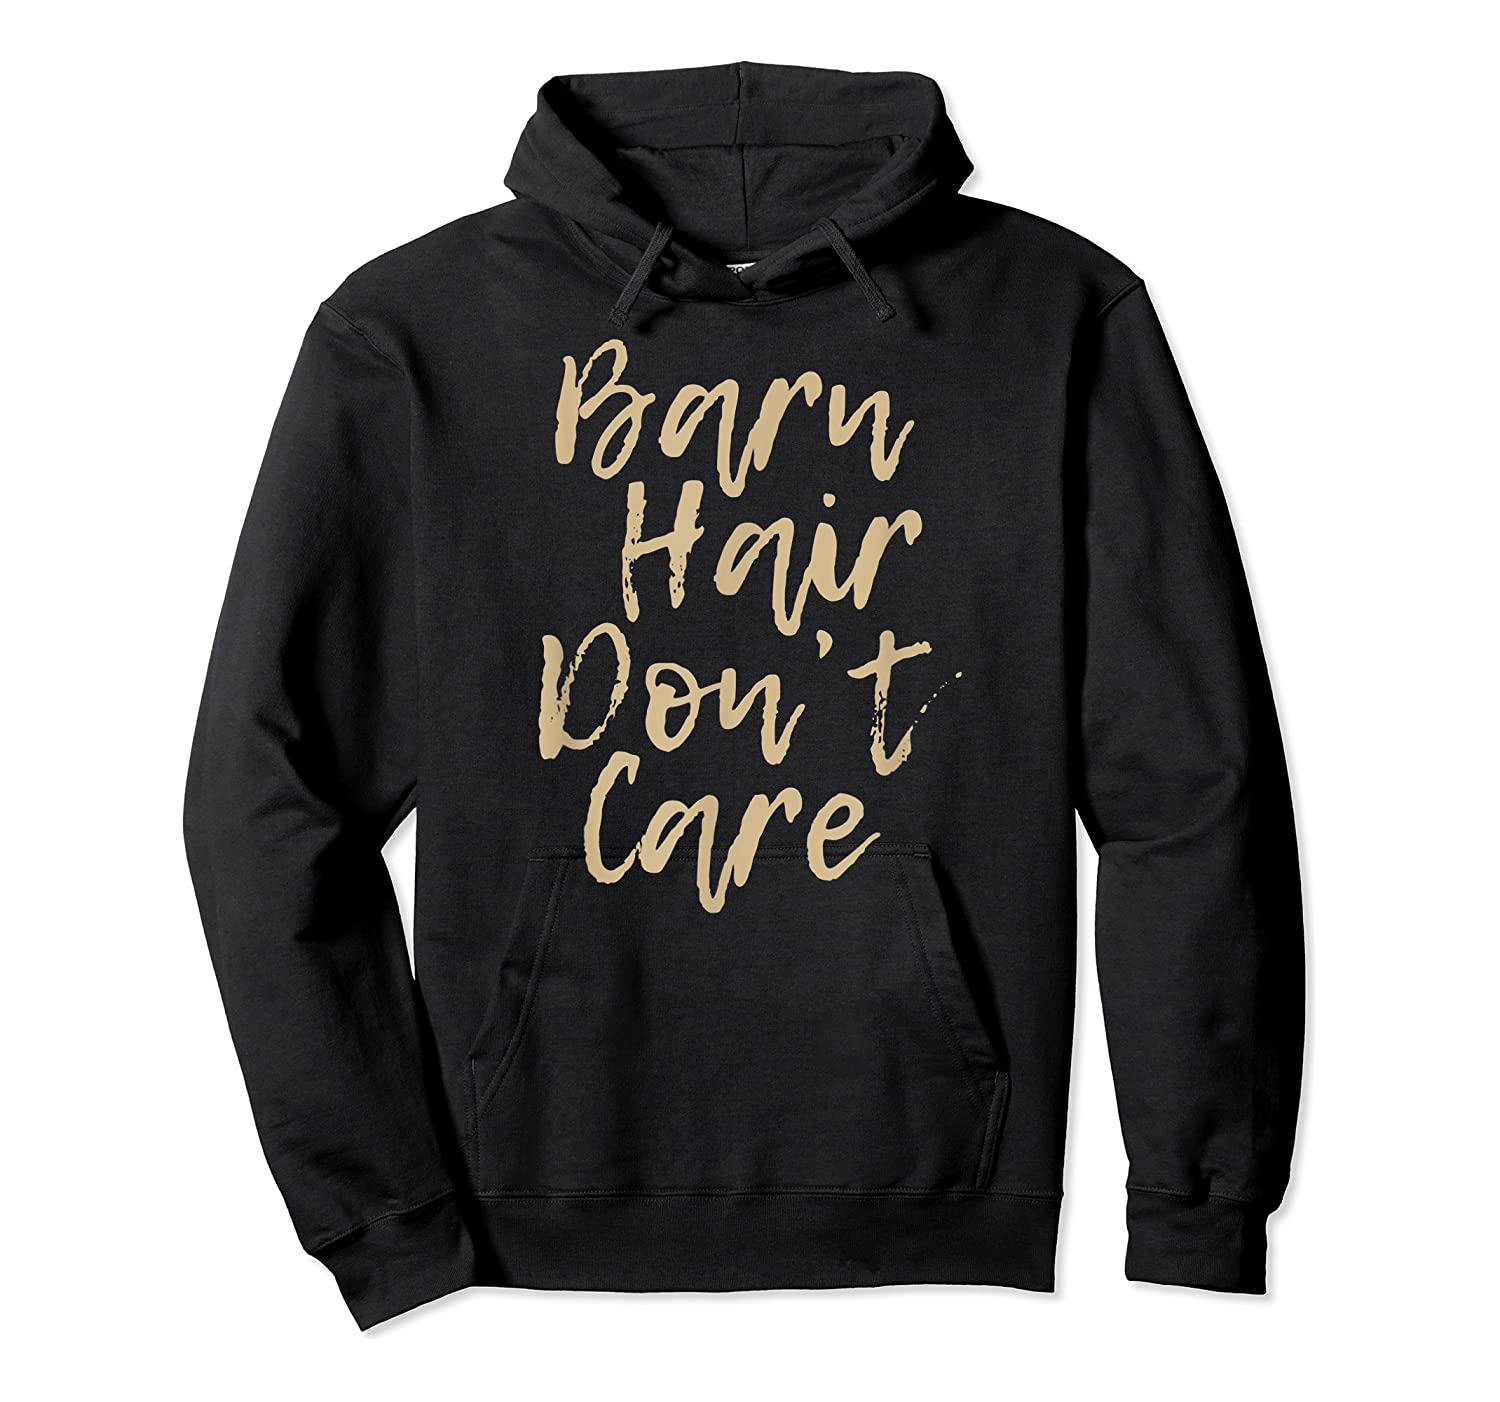 Barn Hair Don't Care Cute Horse Girl Show Christmas Gift Shirts Unisex Pullover Hoodie